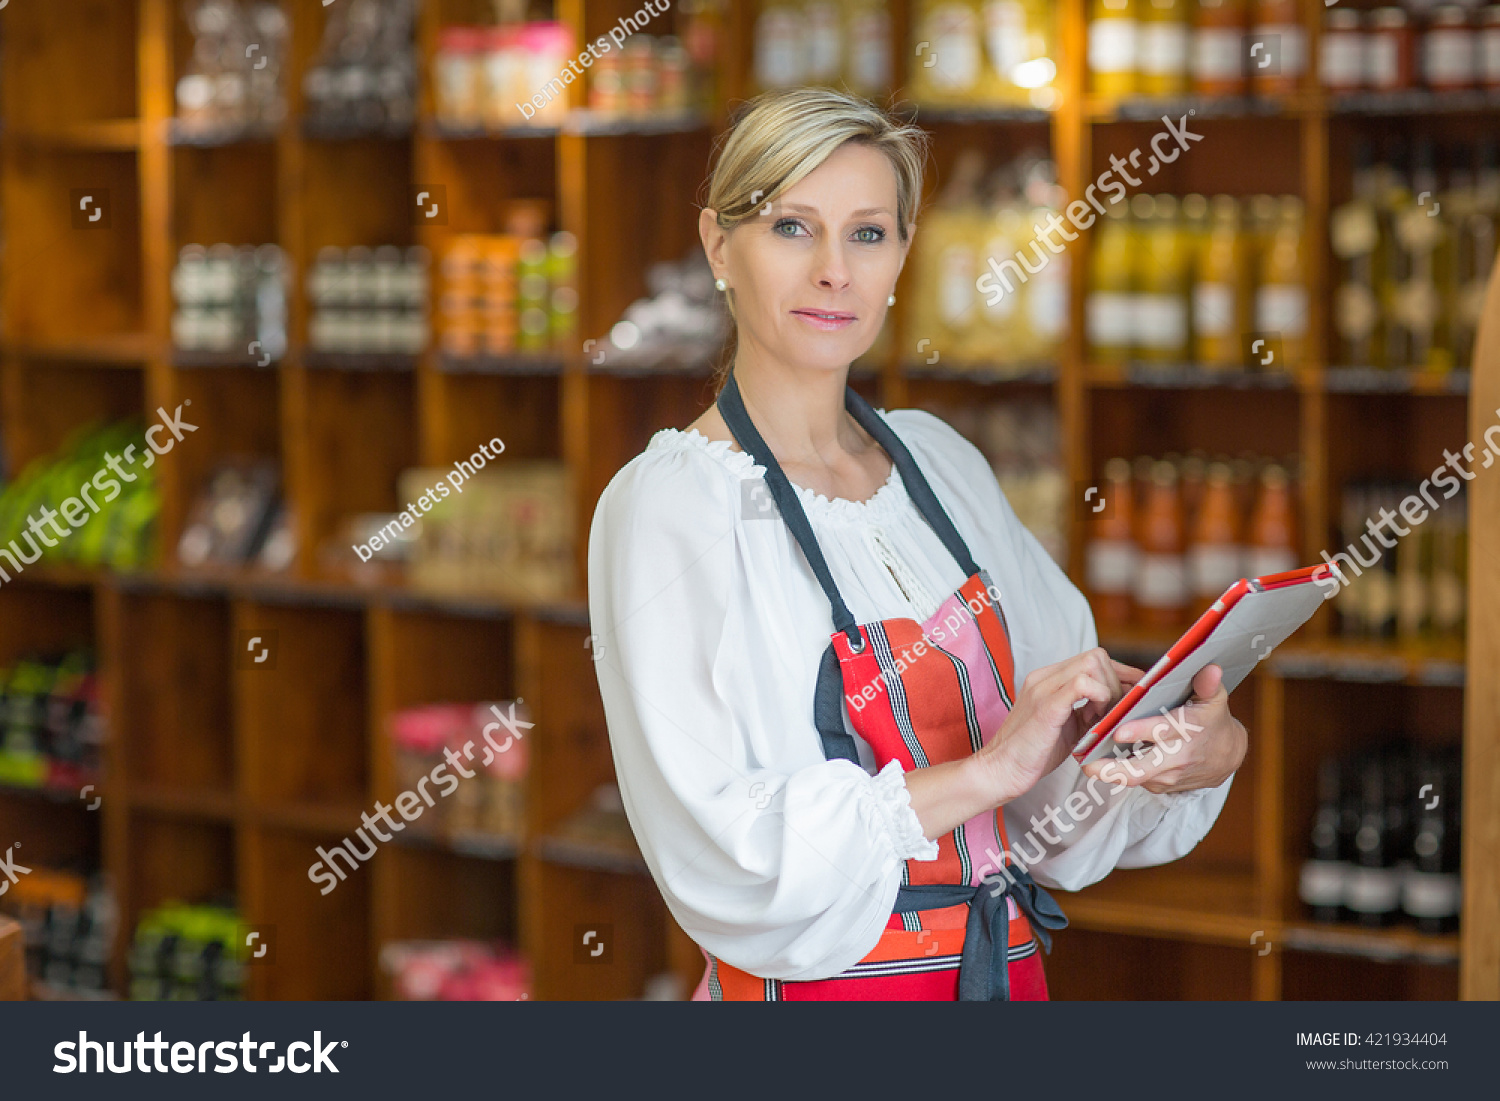 stock-photo-woman-holding-digital-tablet-in-grocery-store-421934404.jpg